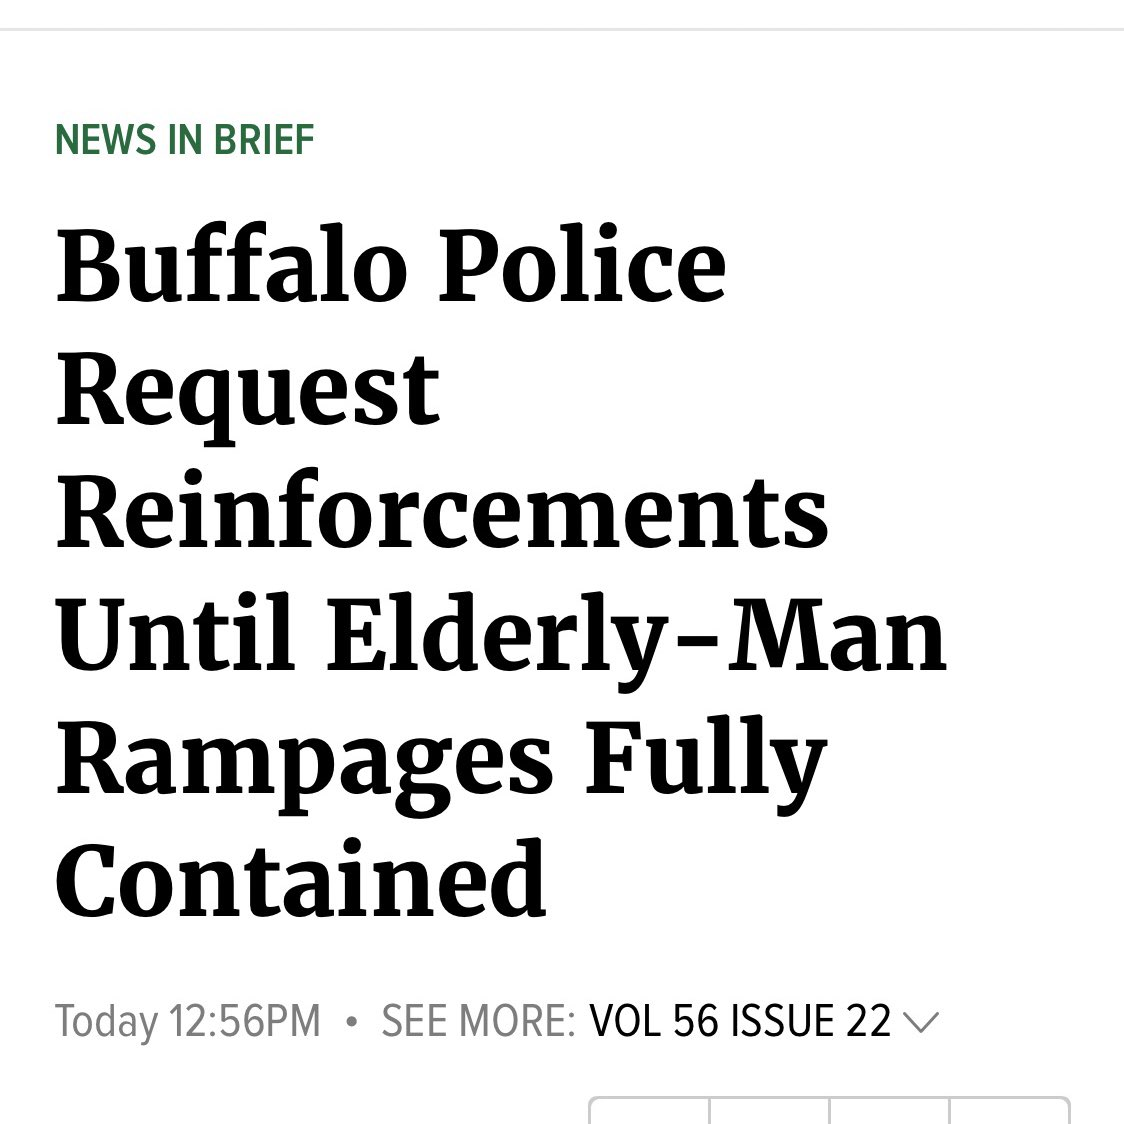 I just scrolled through @theonion. They are on fire today https://t.co/yA3pMs1t16